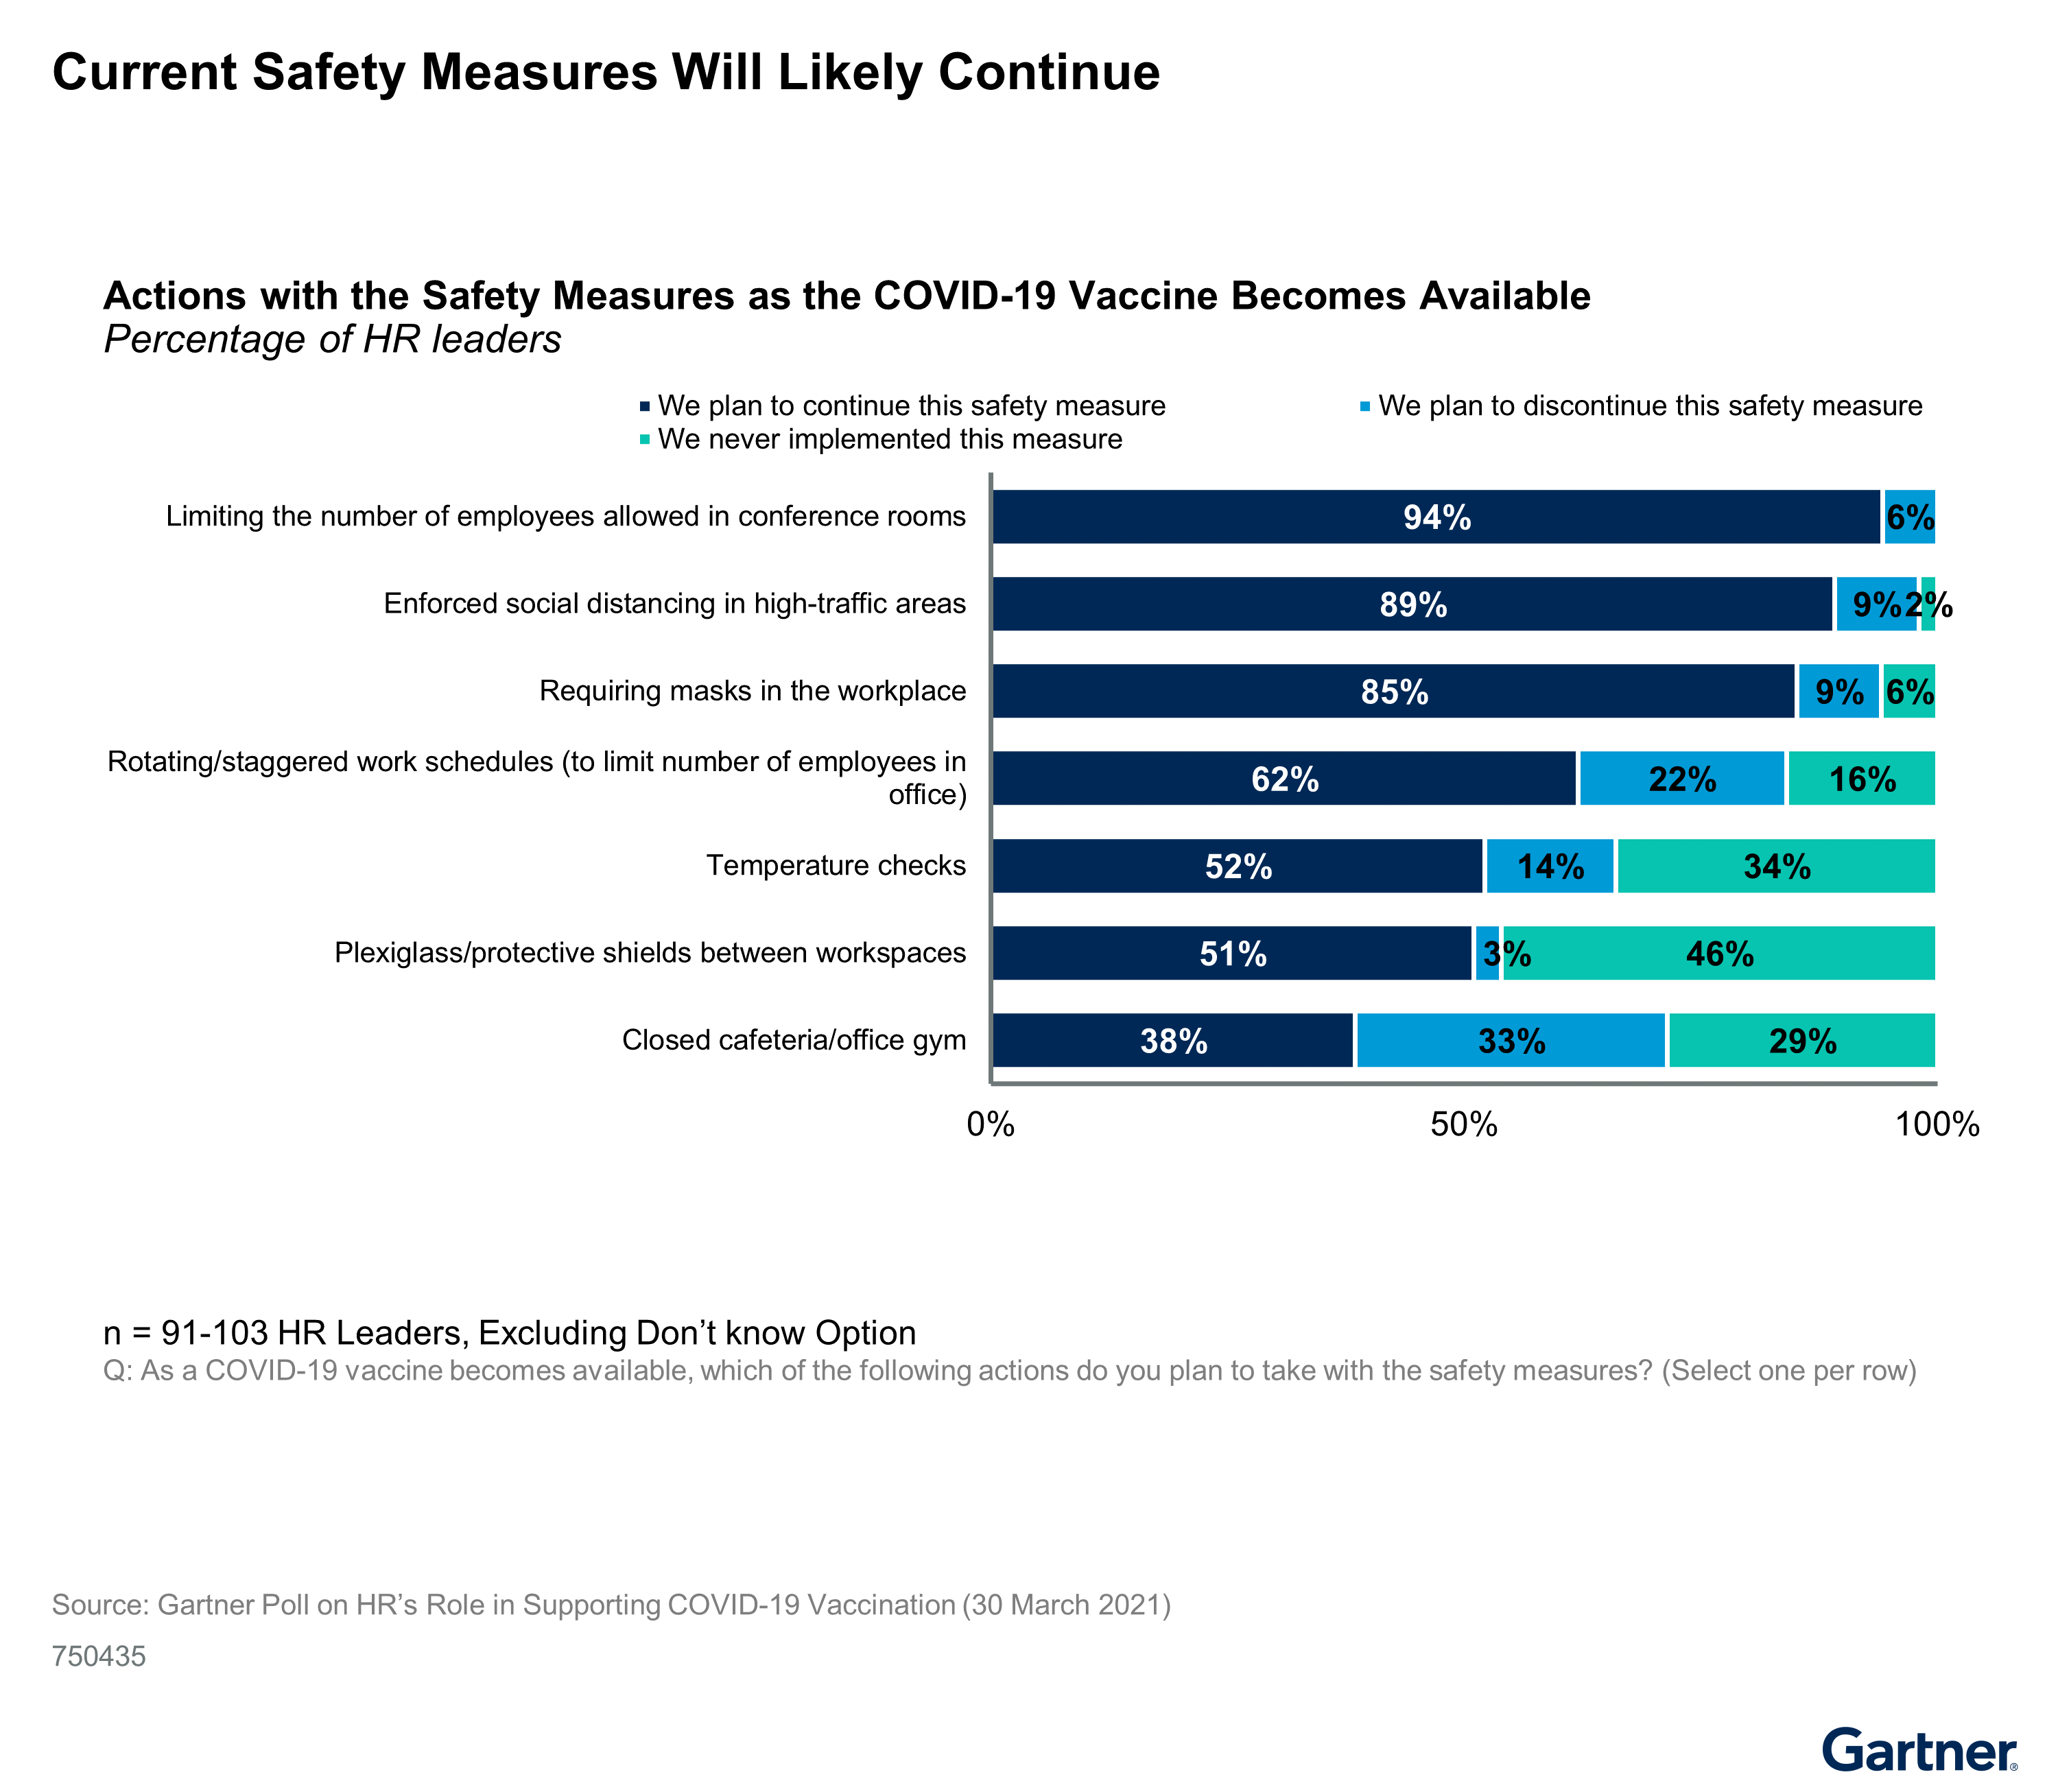 Figure 3: Current Safety Measures Will Likely Continue